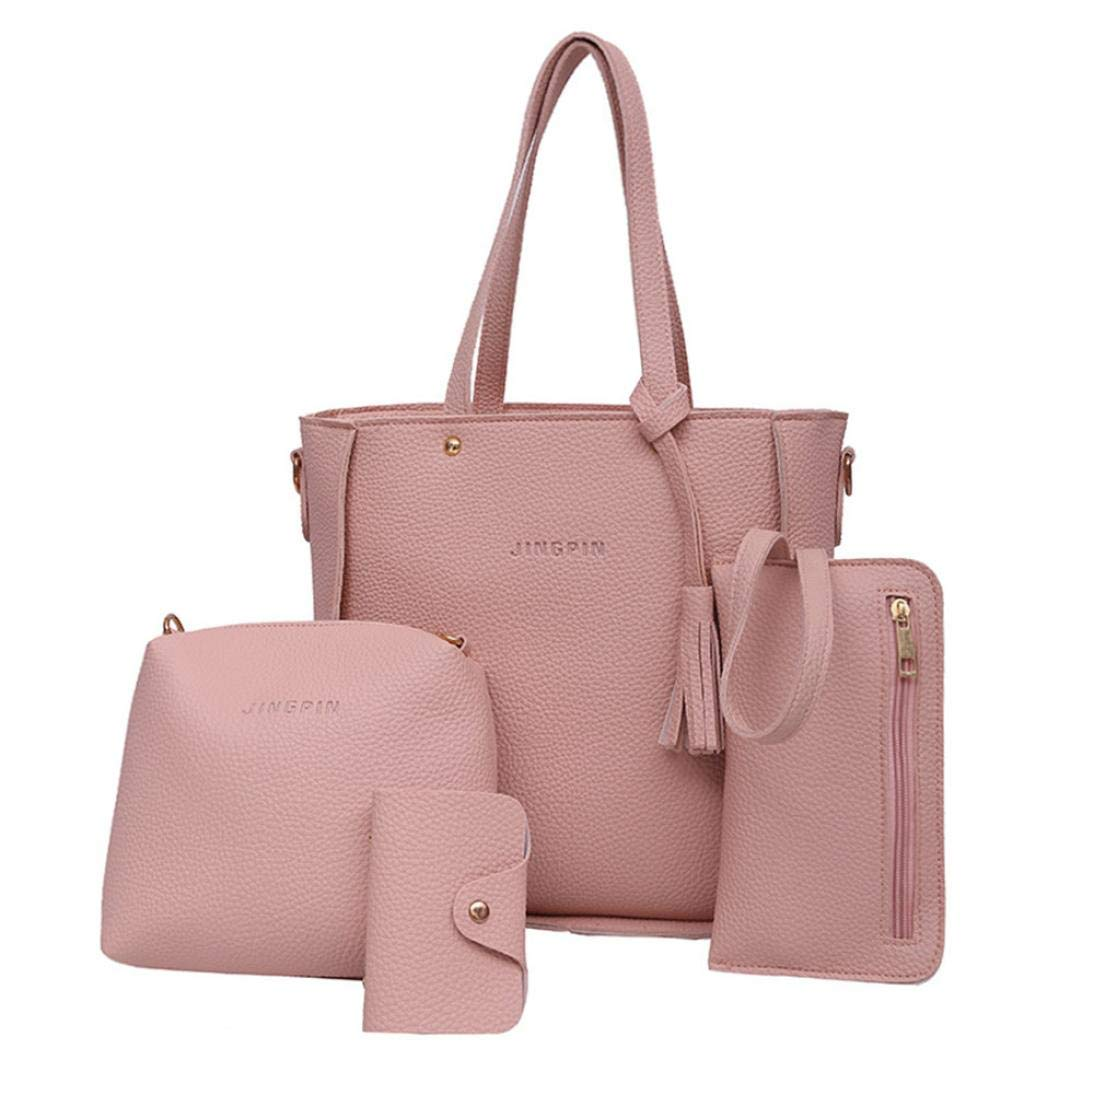 4 Set Handbag Shoulder Bags,Outsta Women's Four Pieces Tote Bag Crossbody Wallet Travel Backpack Messenger Classic Basic Casual Daypack (Pink)